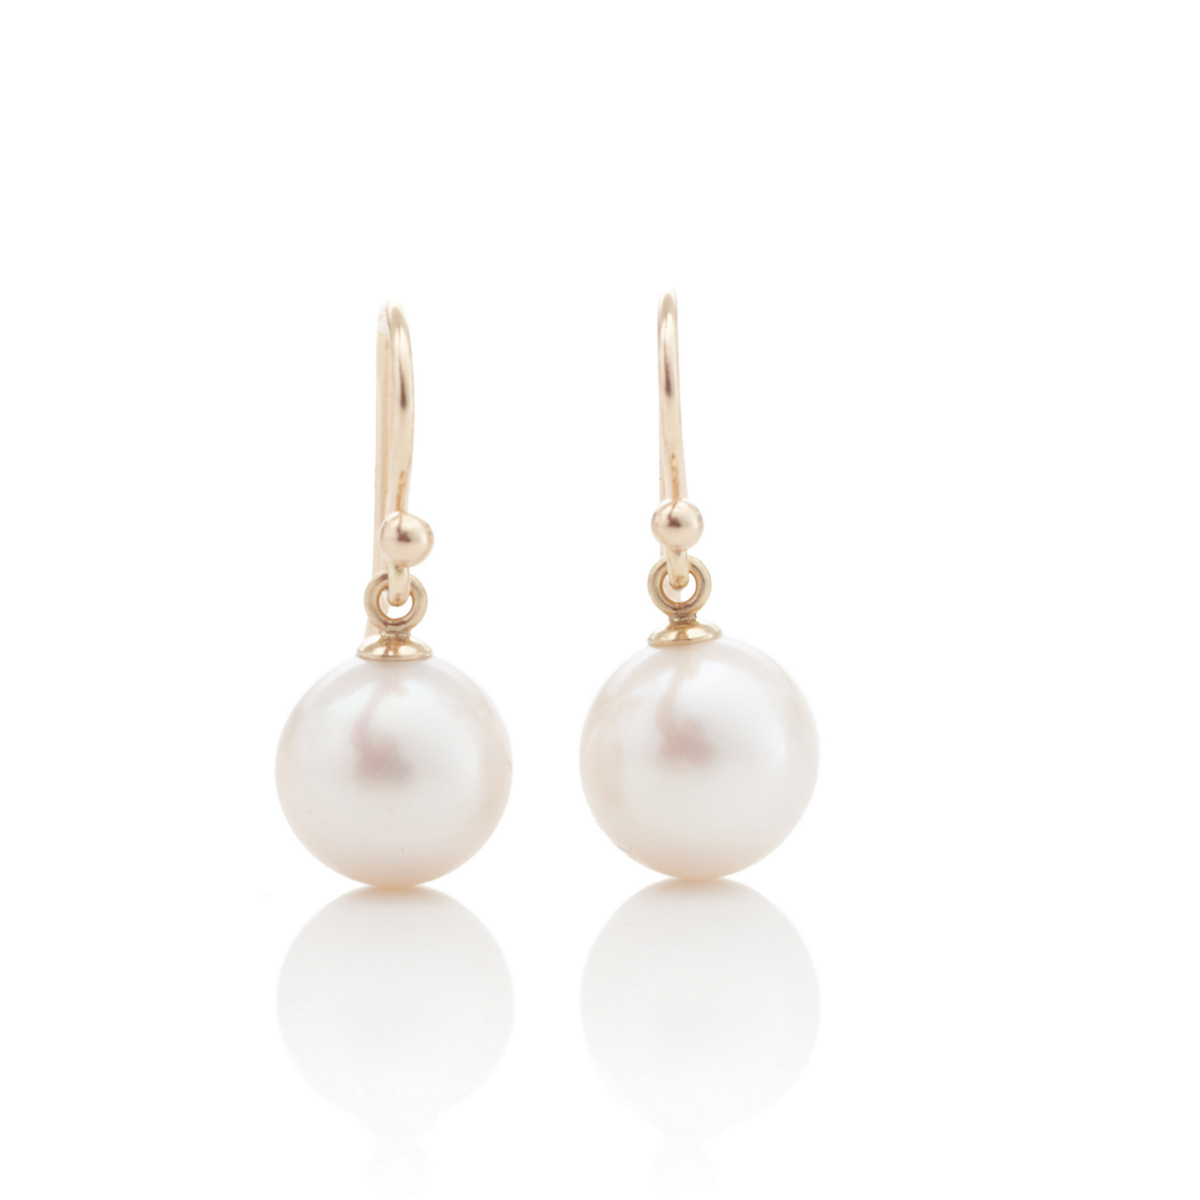 Gump's Freshwater 9.5mm Pearl Drop Earrings